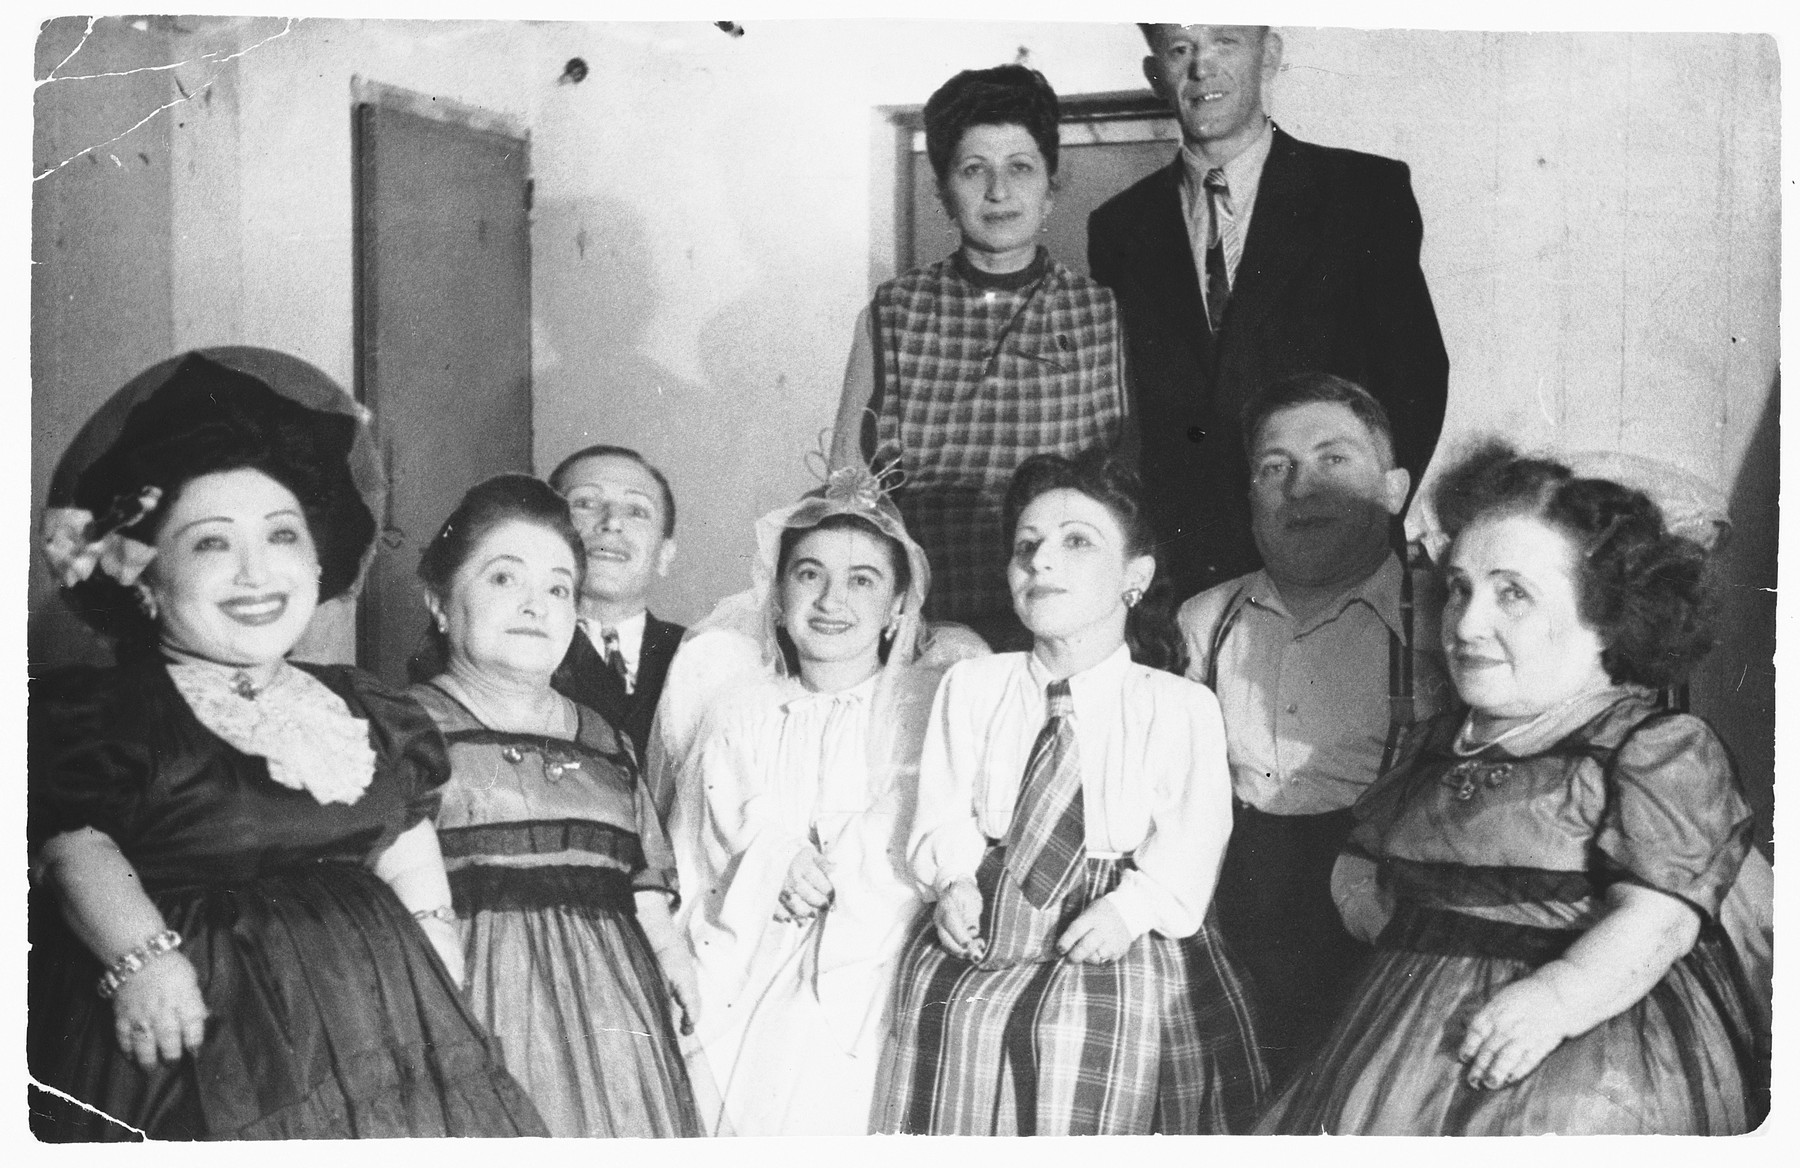 Group portrait of the Ovici family, a family of Jewish dwarf entertainers who survived Auschwitz.  The two people of normal height standing in the back are their sister Sara Ovici, and Moshe Moskowitz, the husband of Elisabeth Ovici.